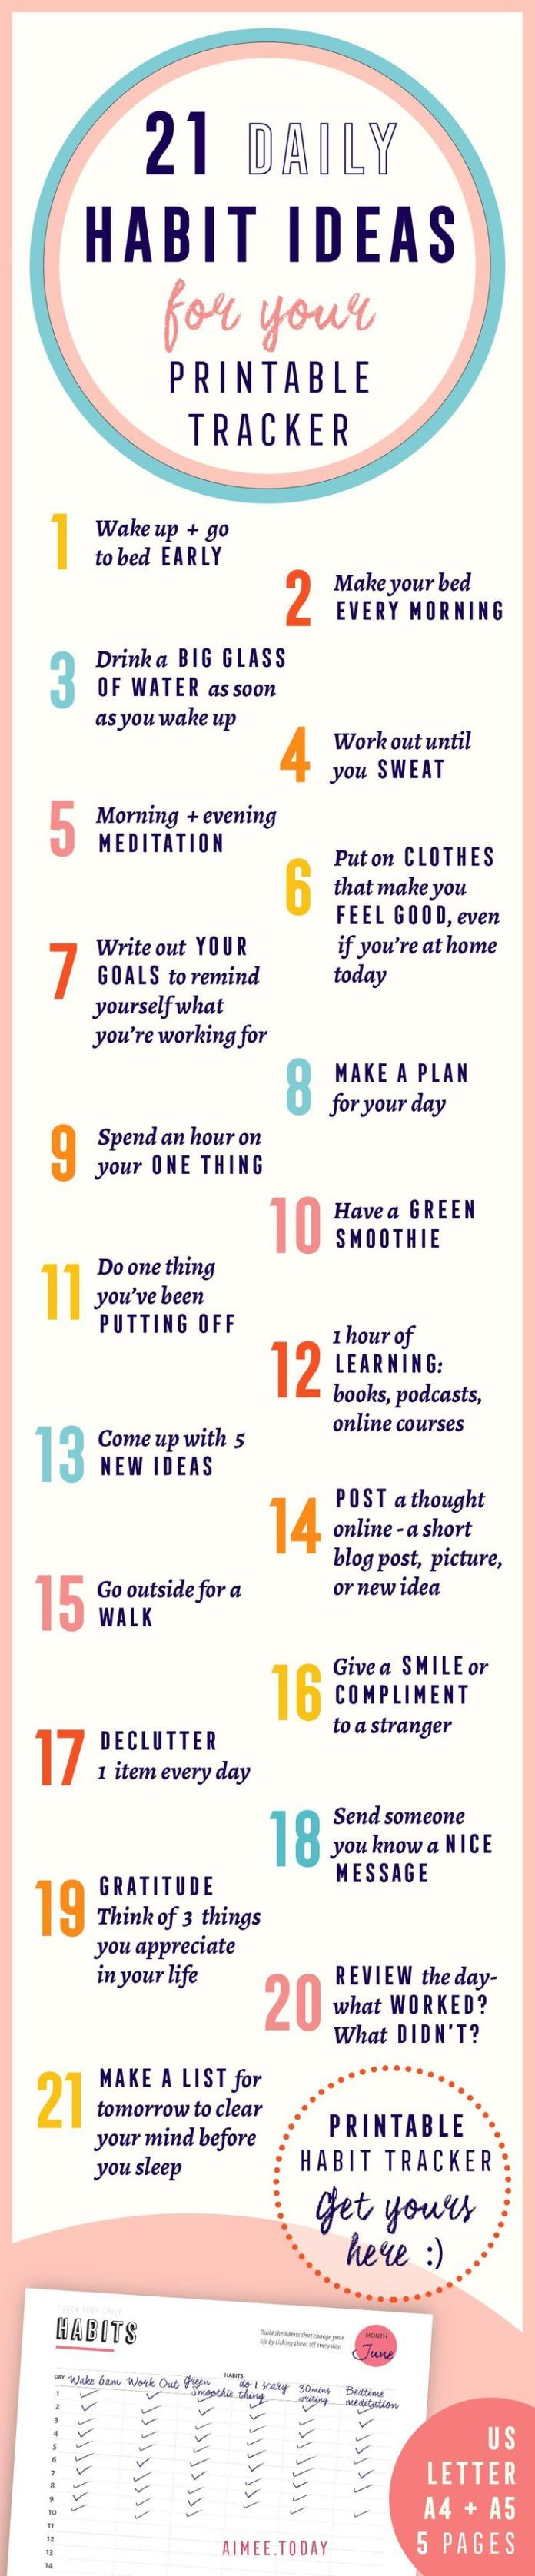 DIY Life Hacks & Crafts : 21 ideas for good habits that you can build and track with your printable habit